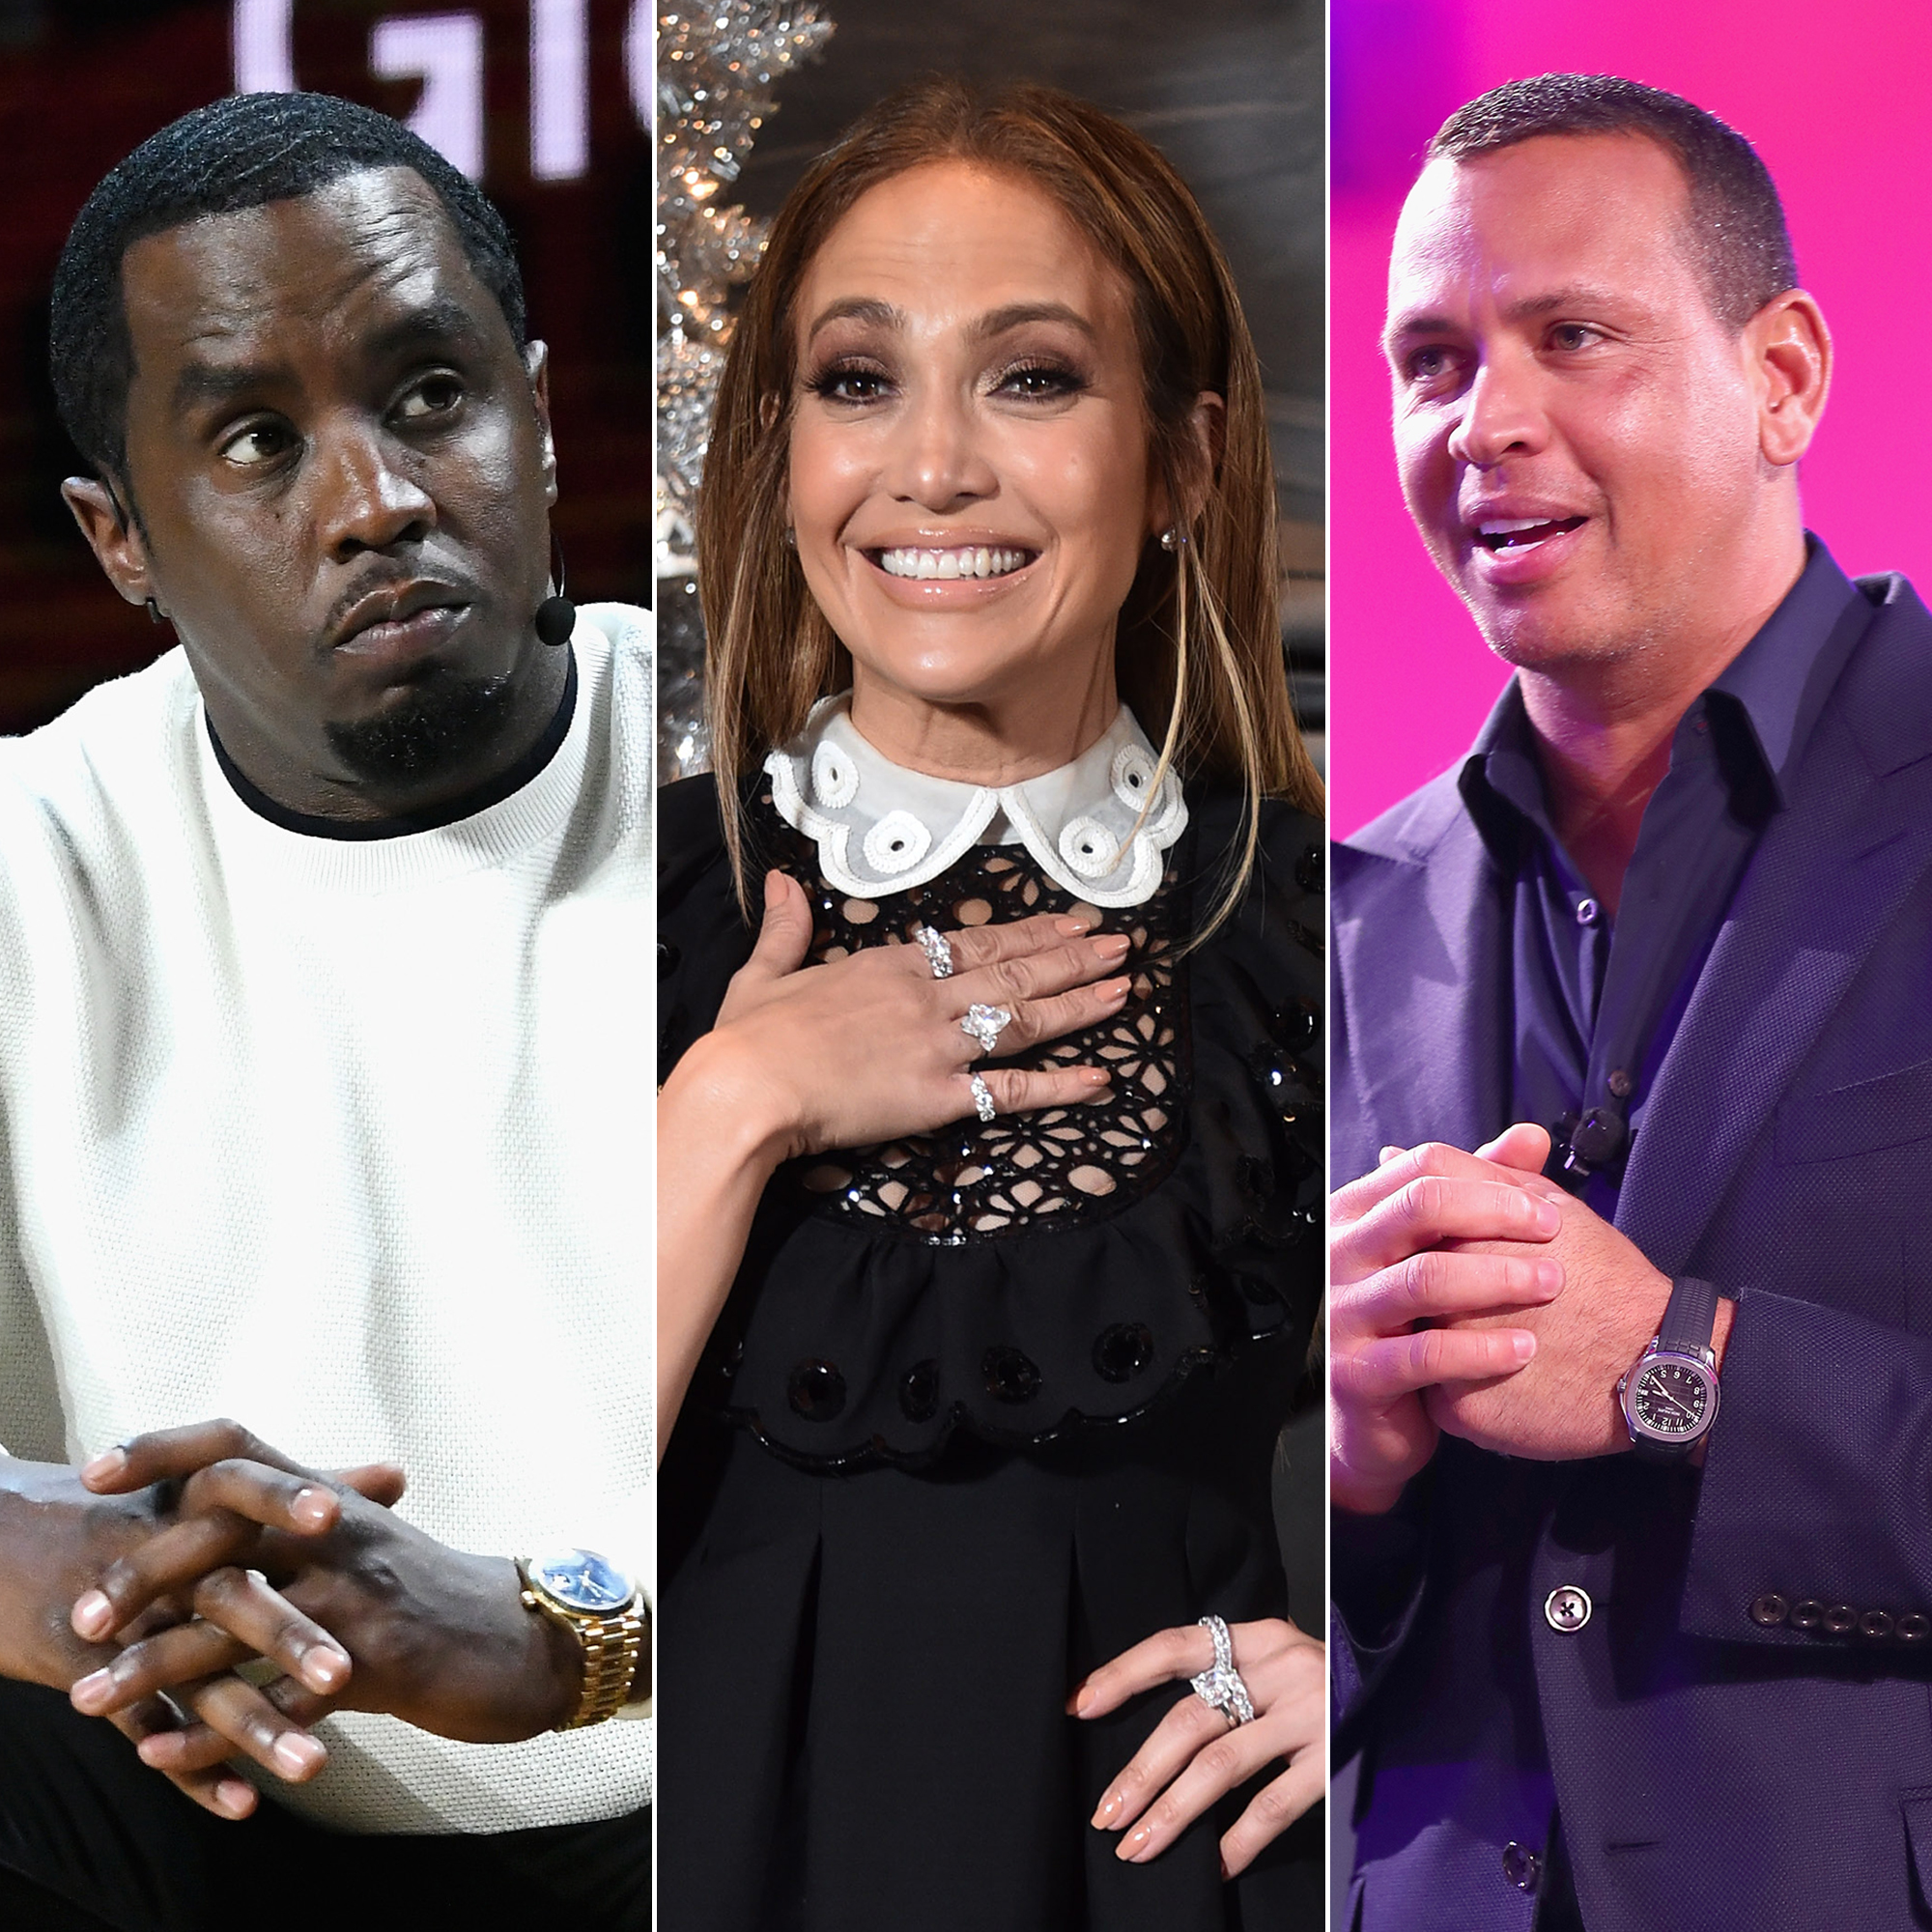 A-Rod And Diddy Wish Jennifer Lopez A Happy Birthday - Check Out Their Posts And See What J-Lo Got For Her Anniversary